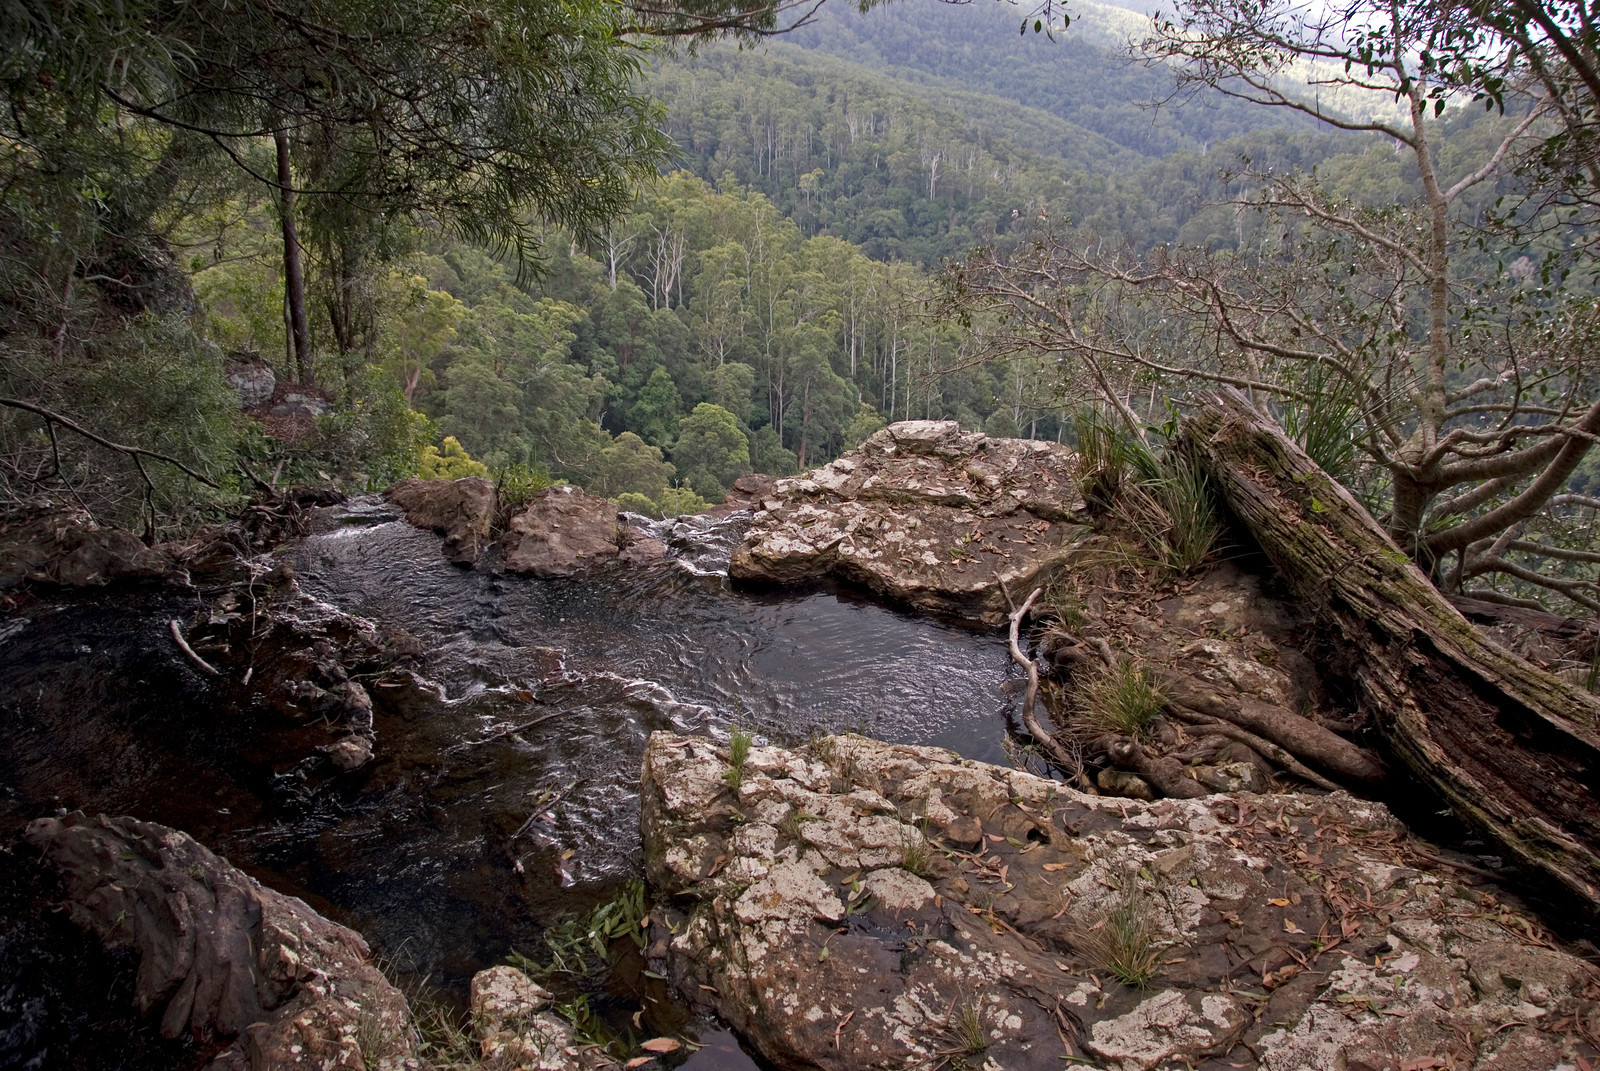 Gondwana Rainforests of Australia - UNESCO World Heritage Site